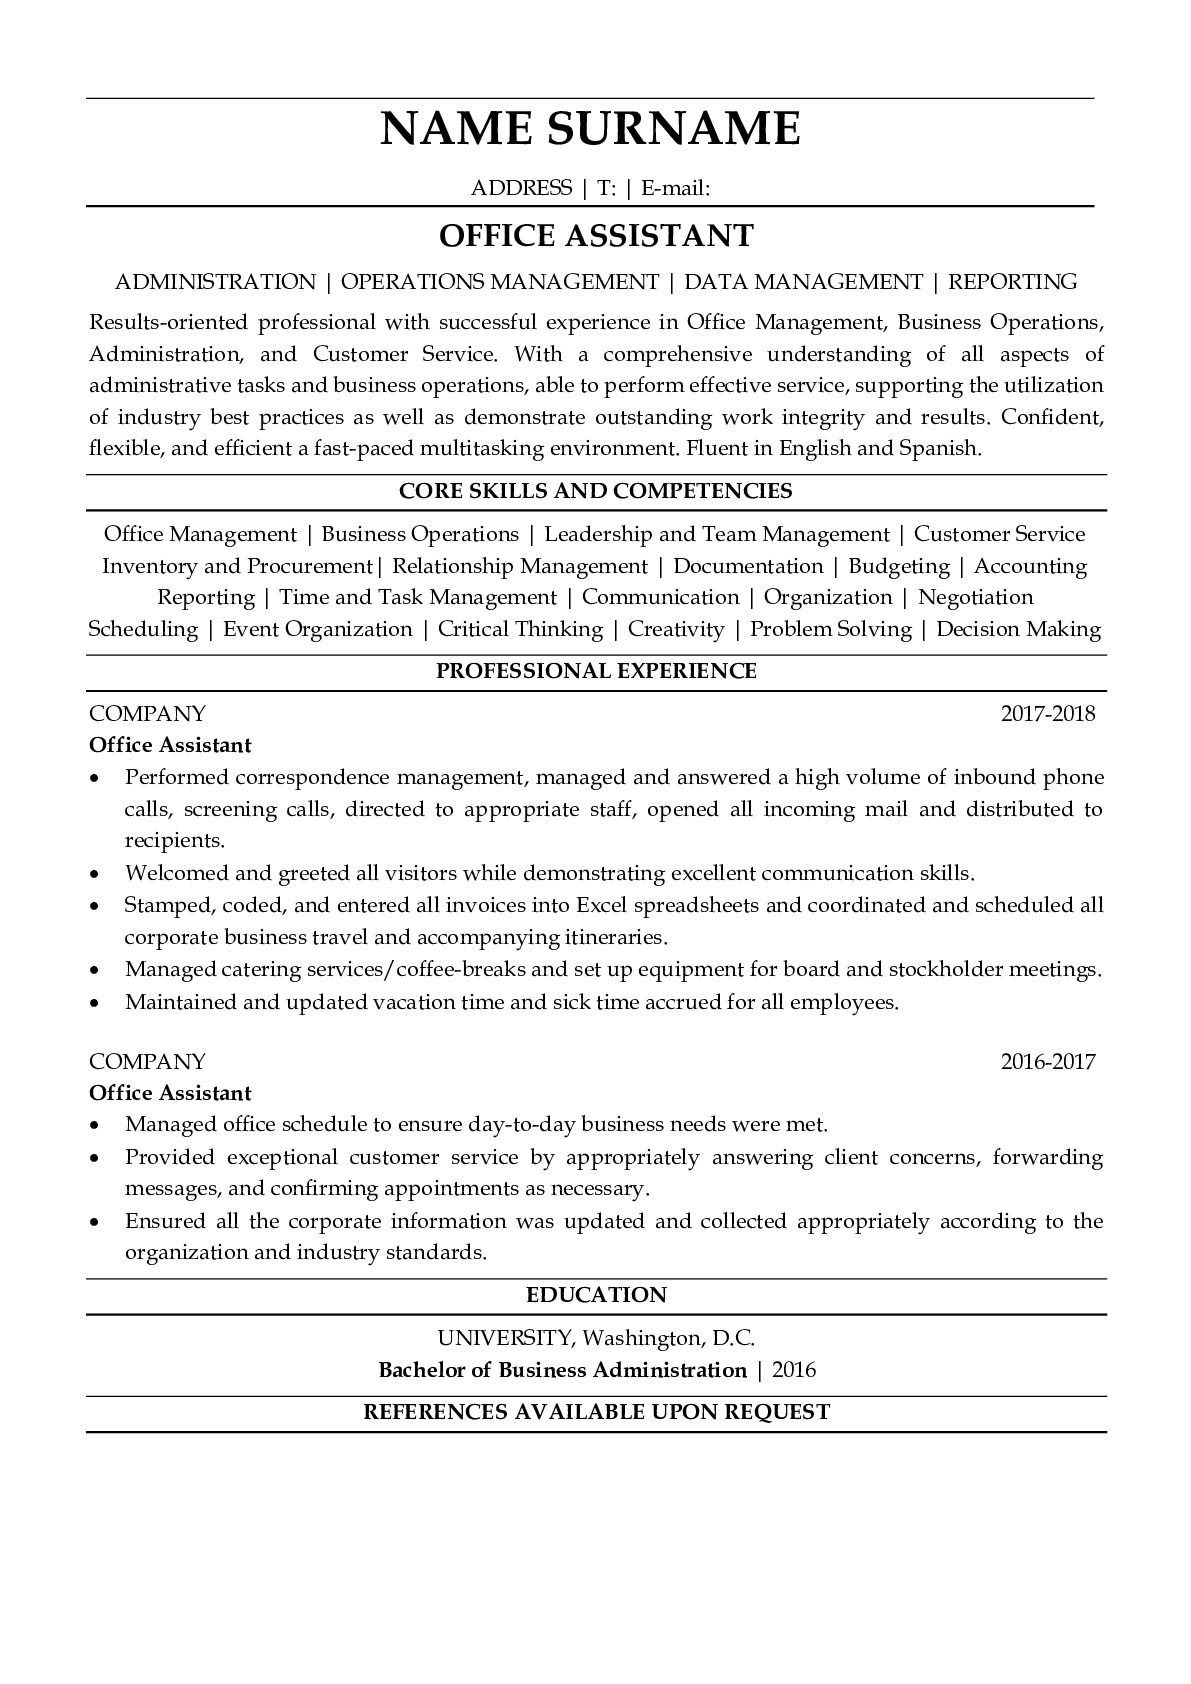 Composing an administrative assistant resume: some basic tips